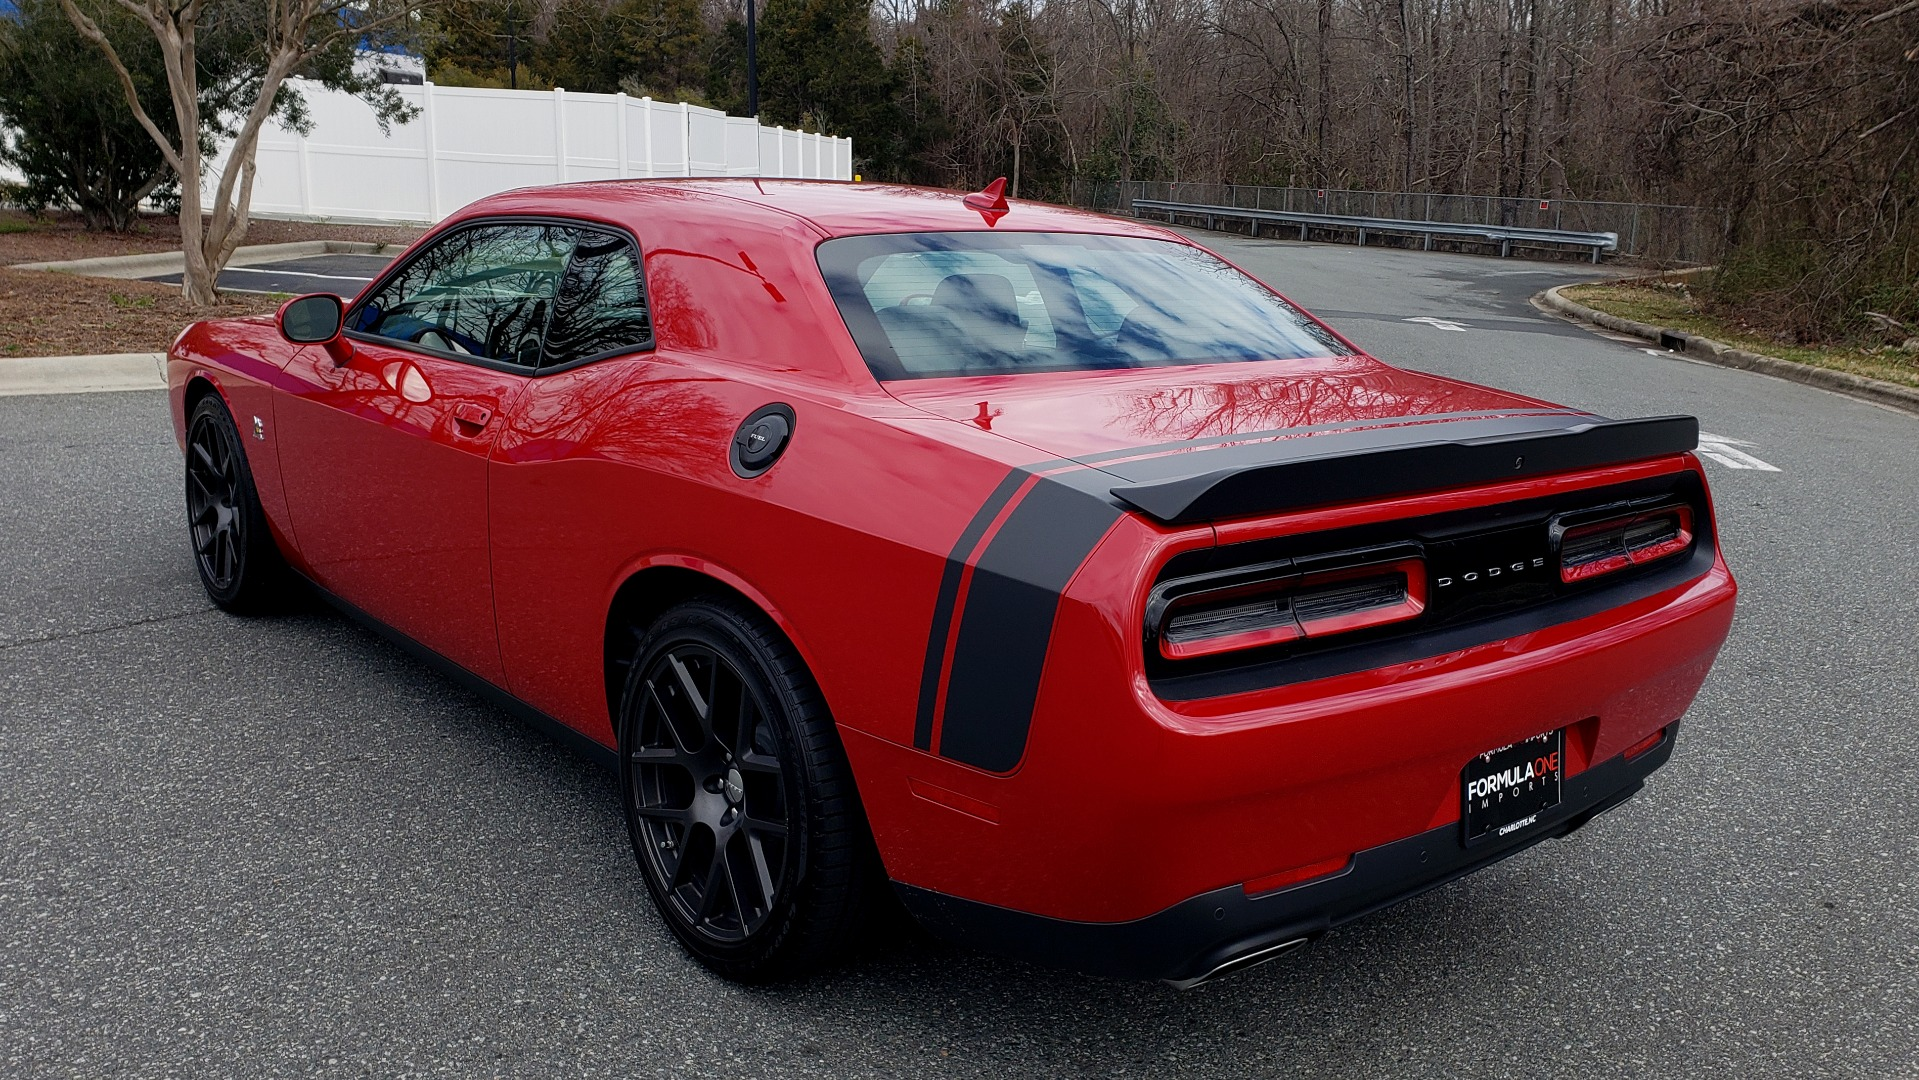 Used 2016 Dodge CHALLENGER R/T SCAT PACK / TECHNOLOGY / ALPINE / 6-SPEED MAN for sale Sold at Formula Imports in Charlotte NC 28227 4